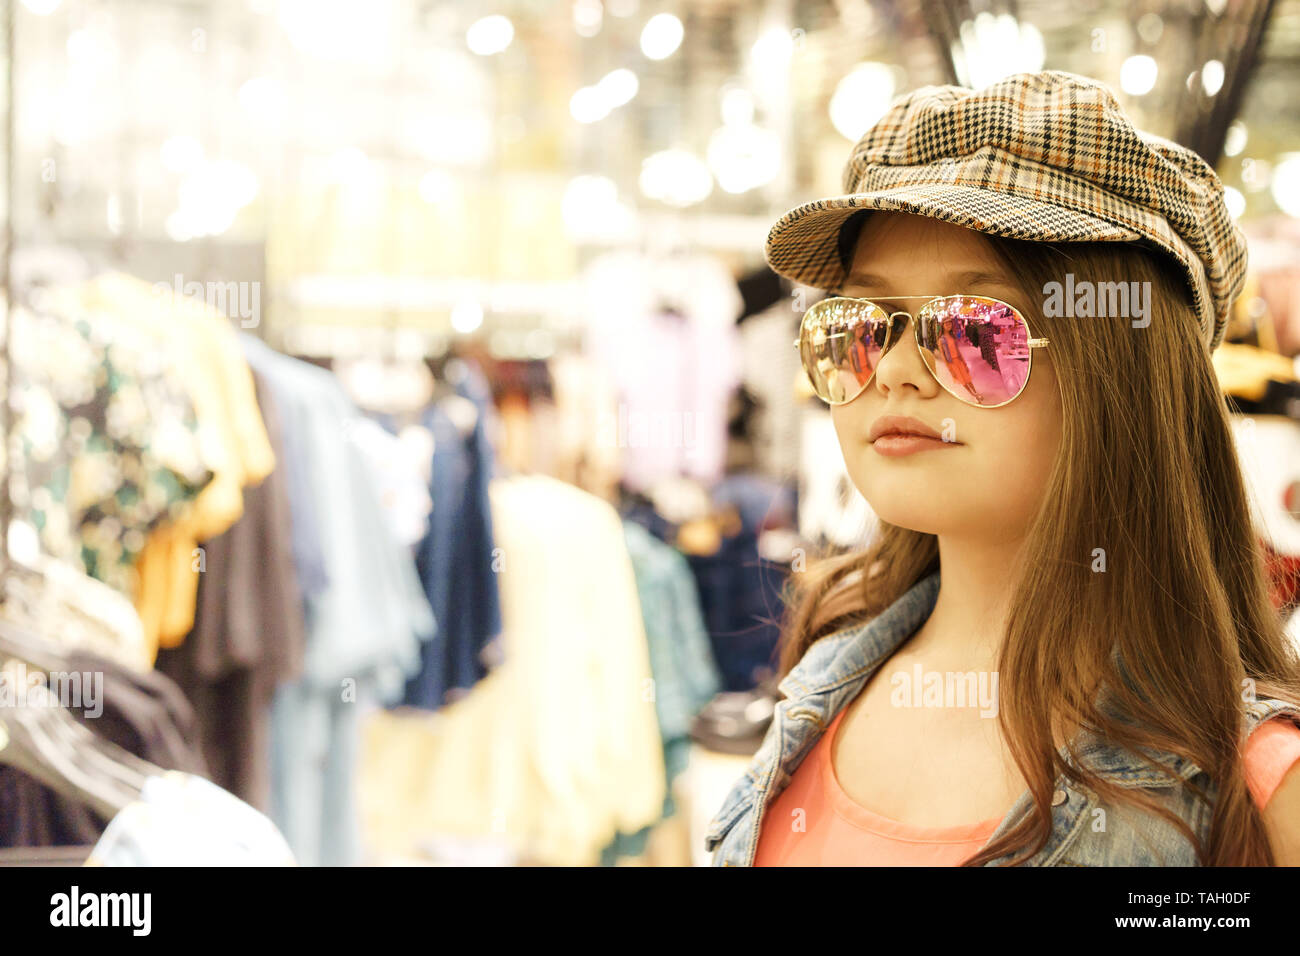 13d822a84409 Pretty 12 year old girl blonde with long hair in a shopping center for  shopping -